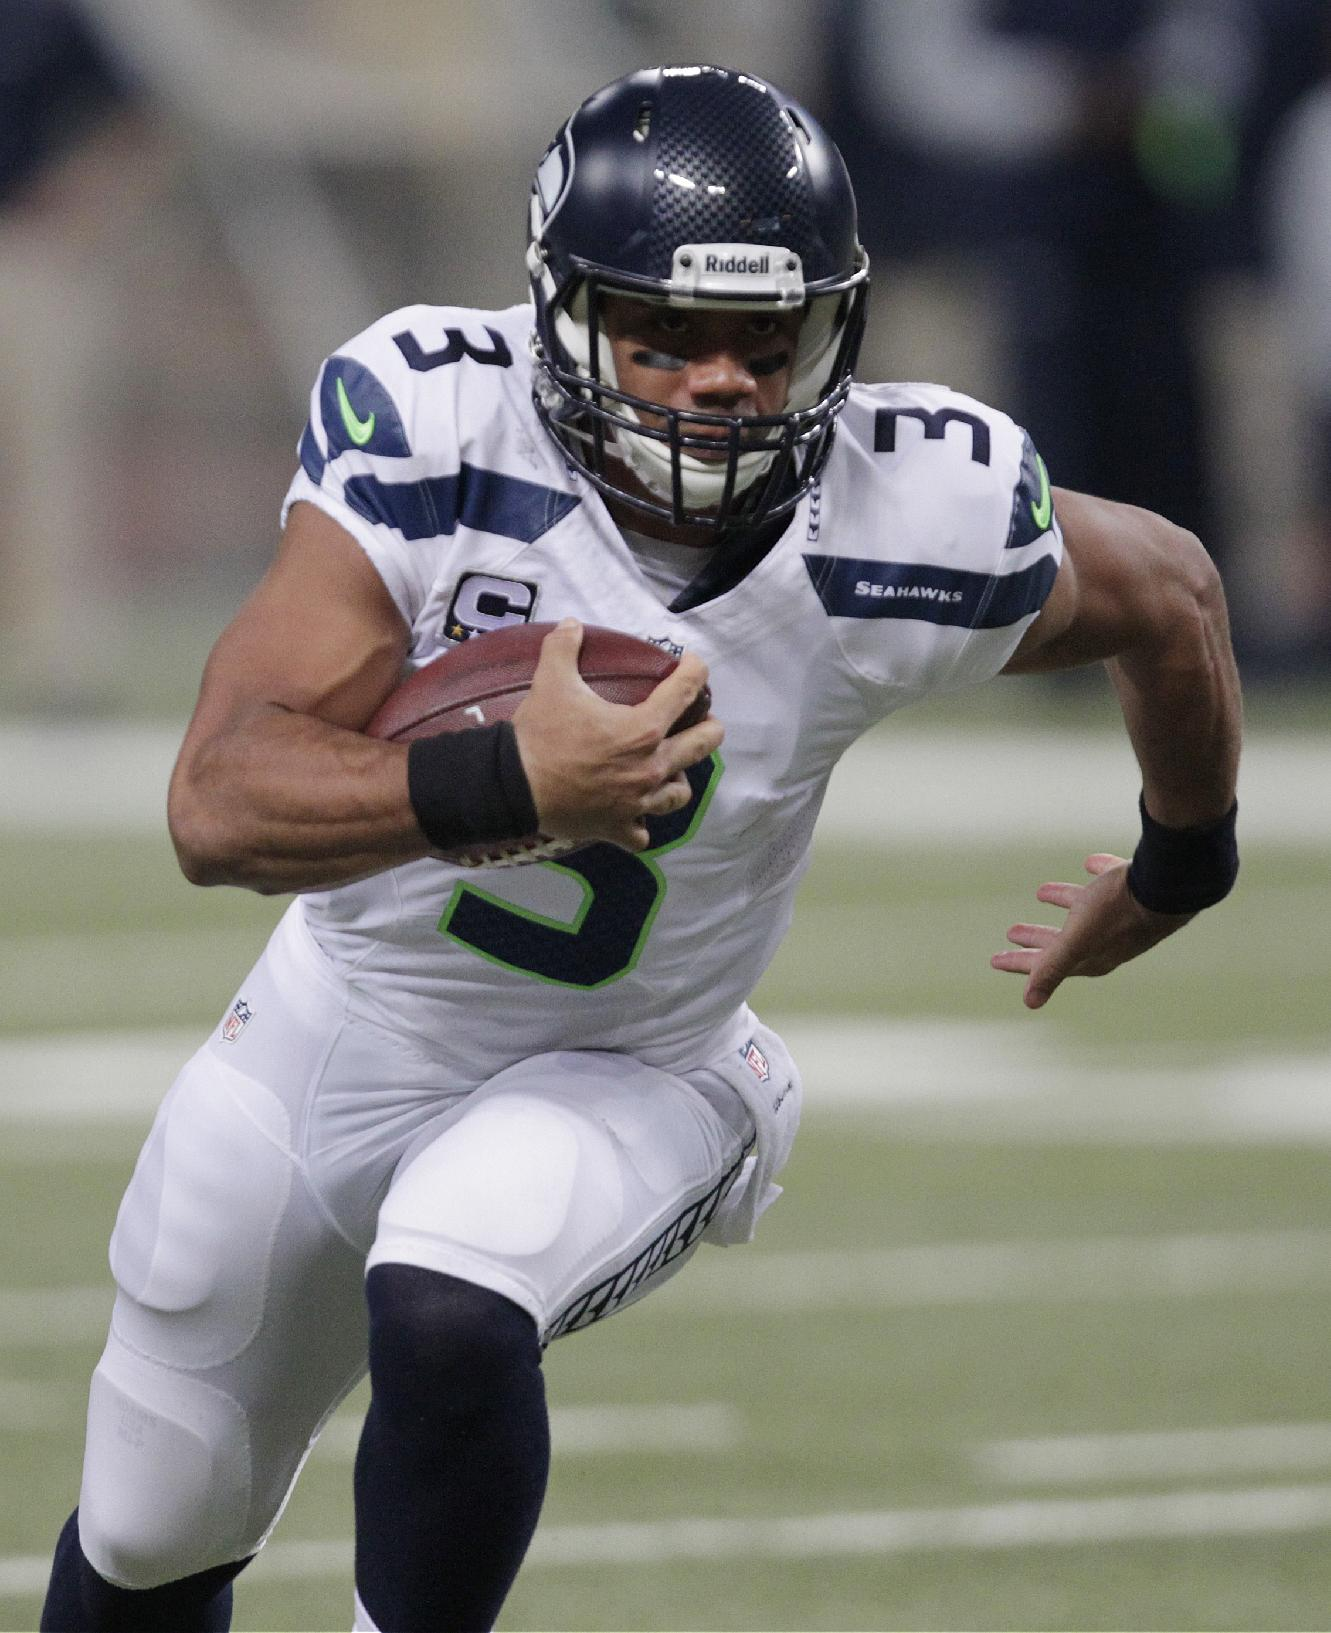 Seattle Seahawks quarterback Russell Wilson (3) rushes against the St. Louis Rams defense during the first half of an NFL football game, Monday, Oct. 28, 2013, in St. Louis